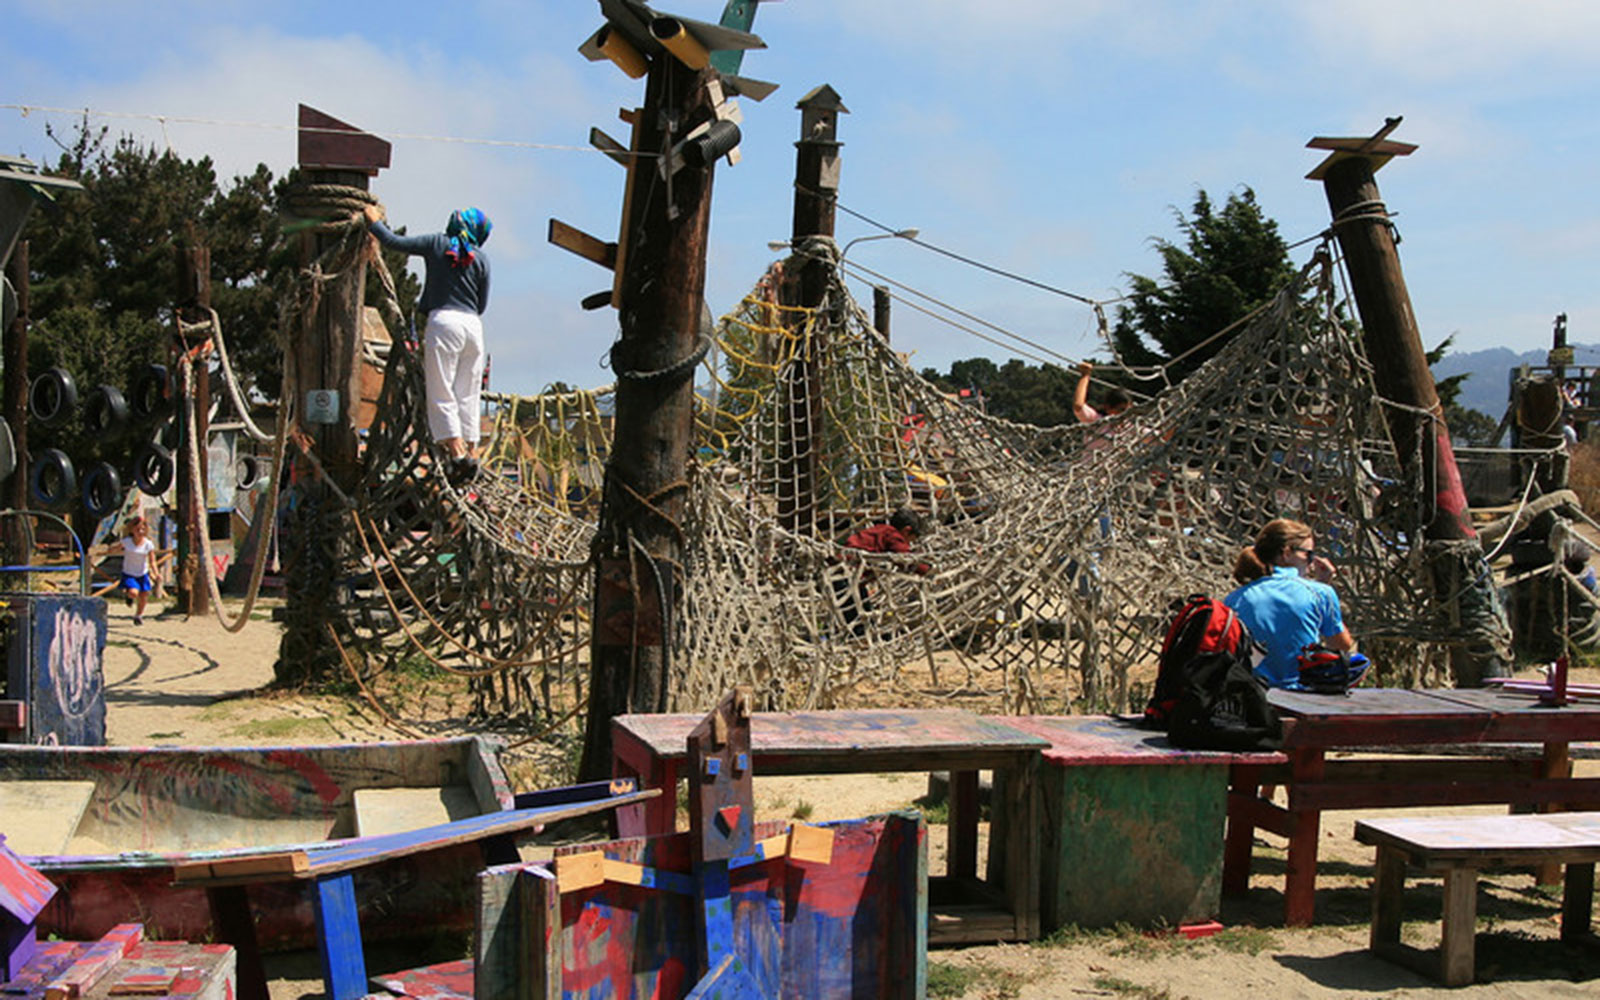 World's Coolest Playgrounds: Adventure Playground, Berkeley, CA